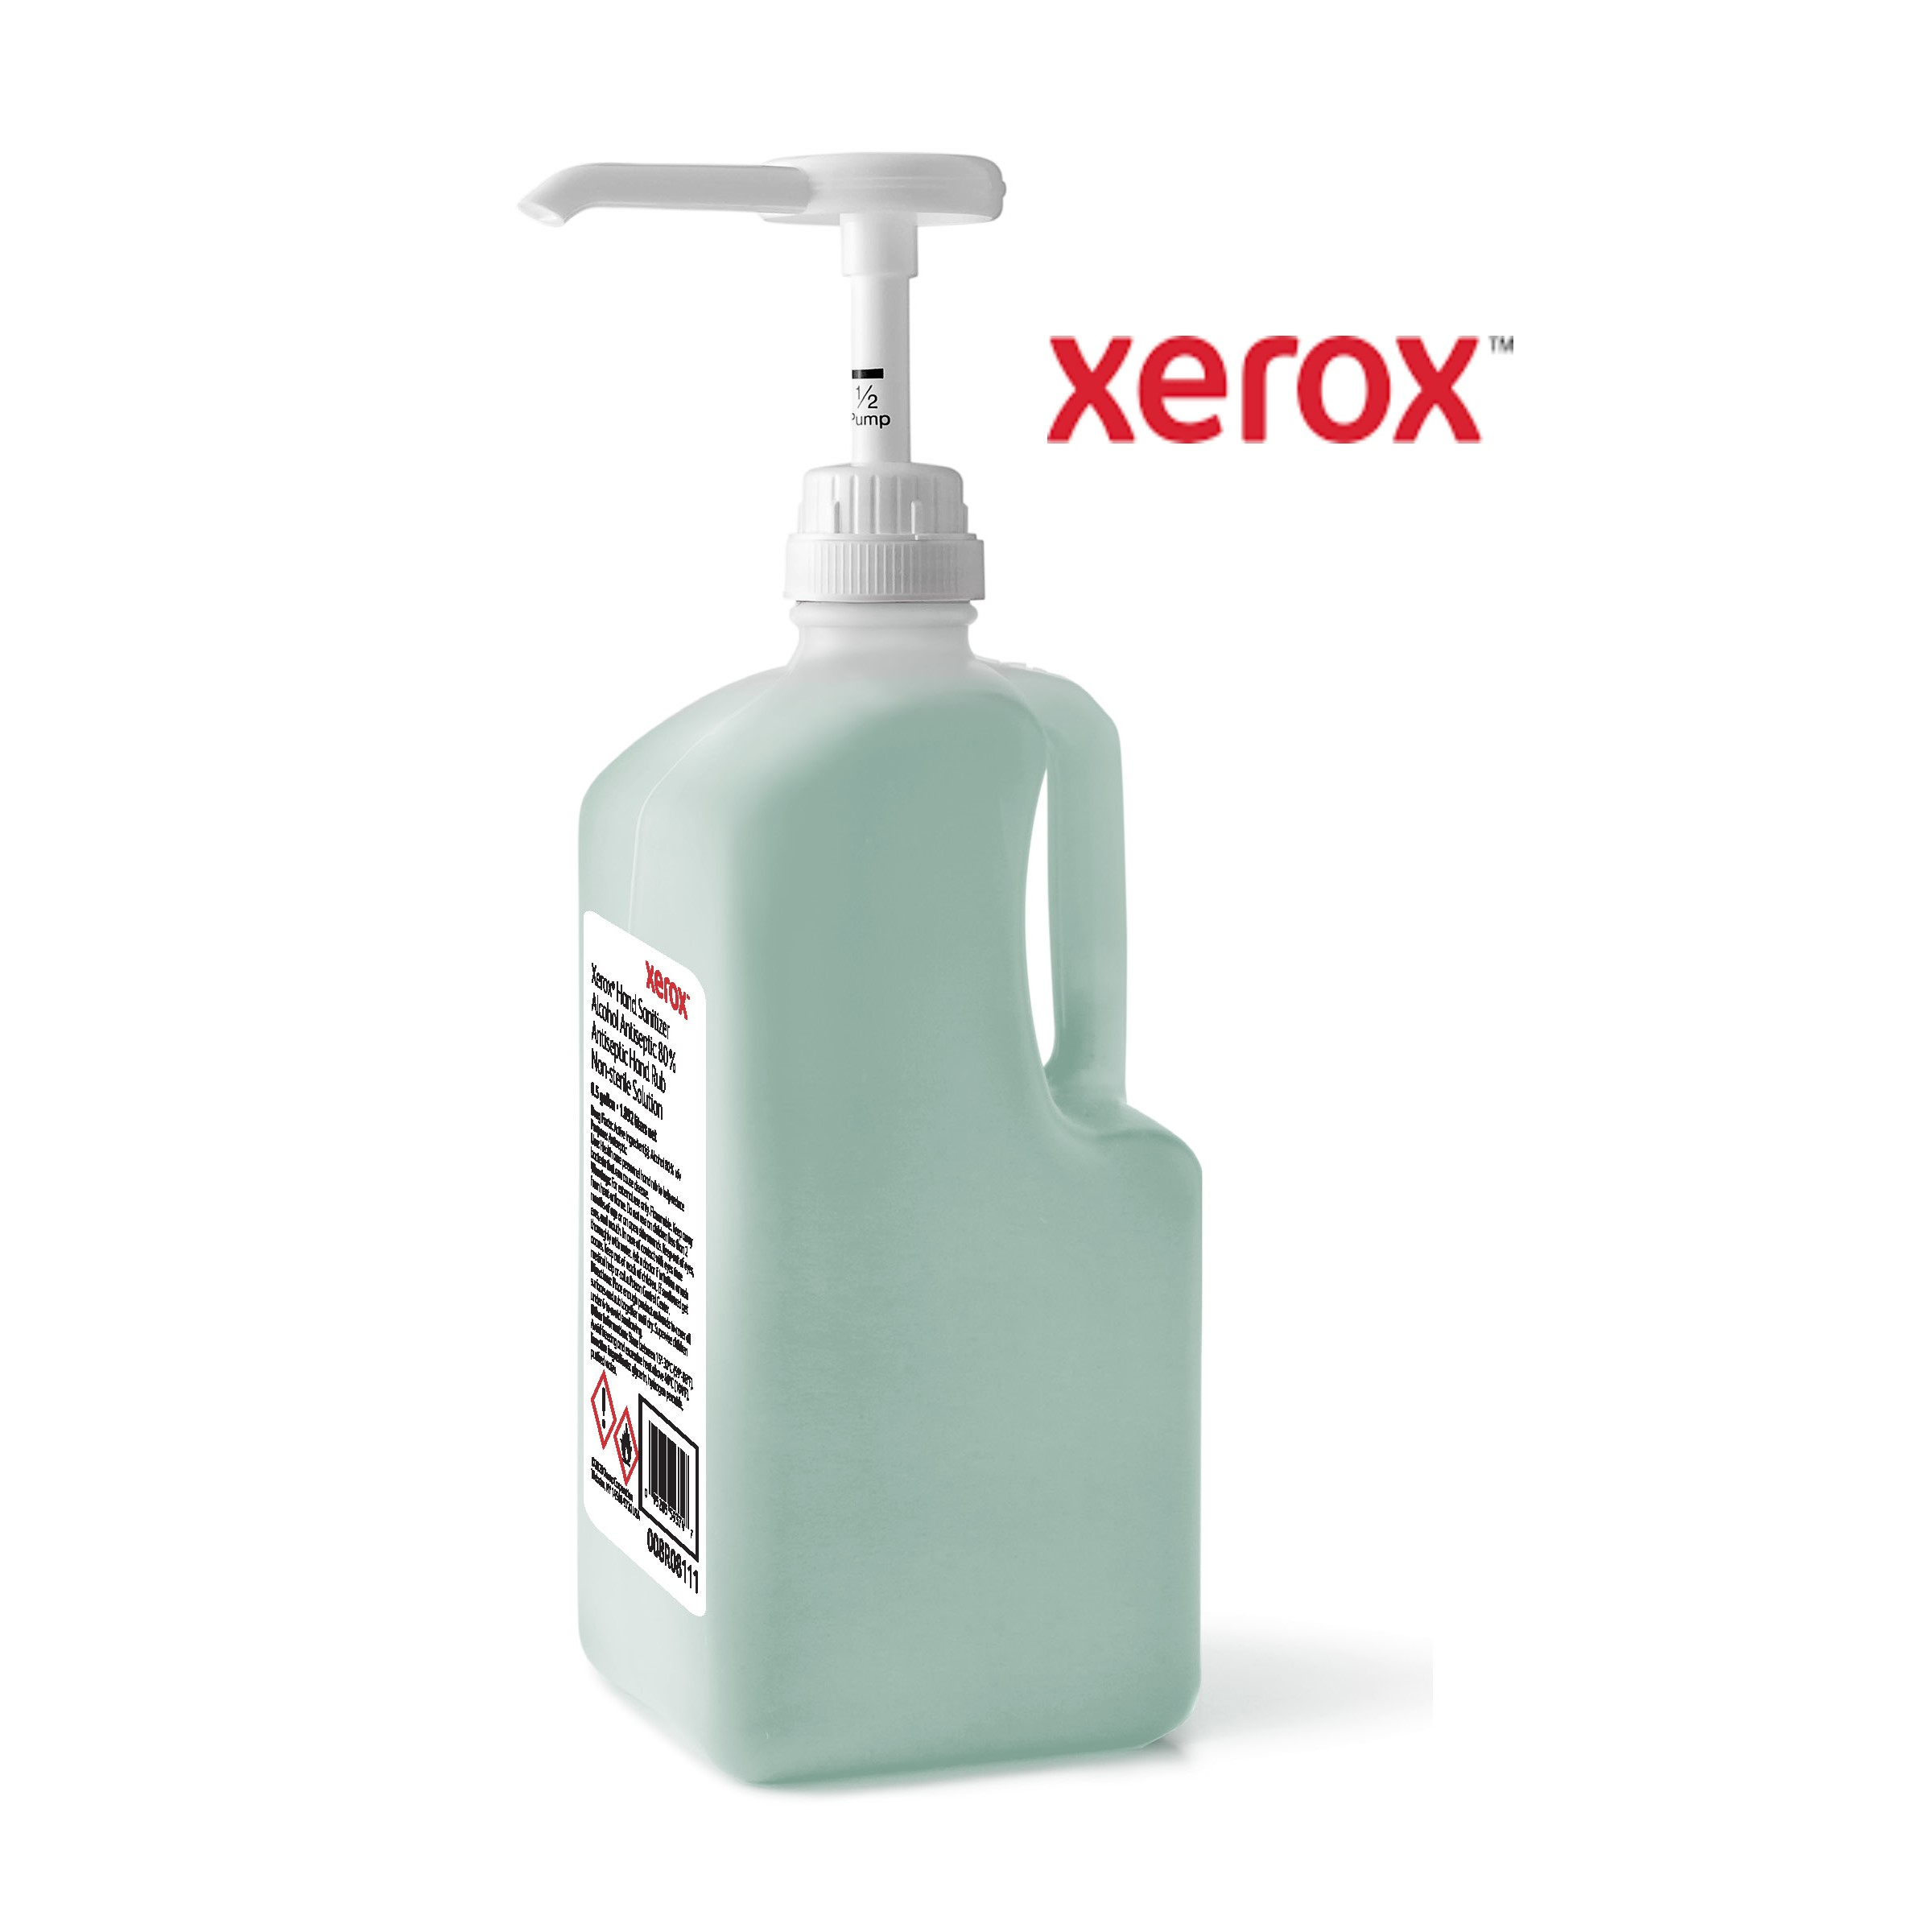 Xerox Hand Sanitizer 0.5 gal Bottle Hospital-Grade Unscented